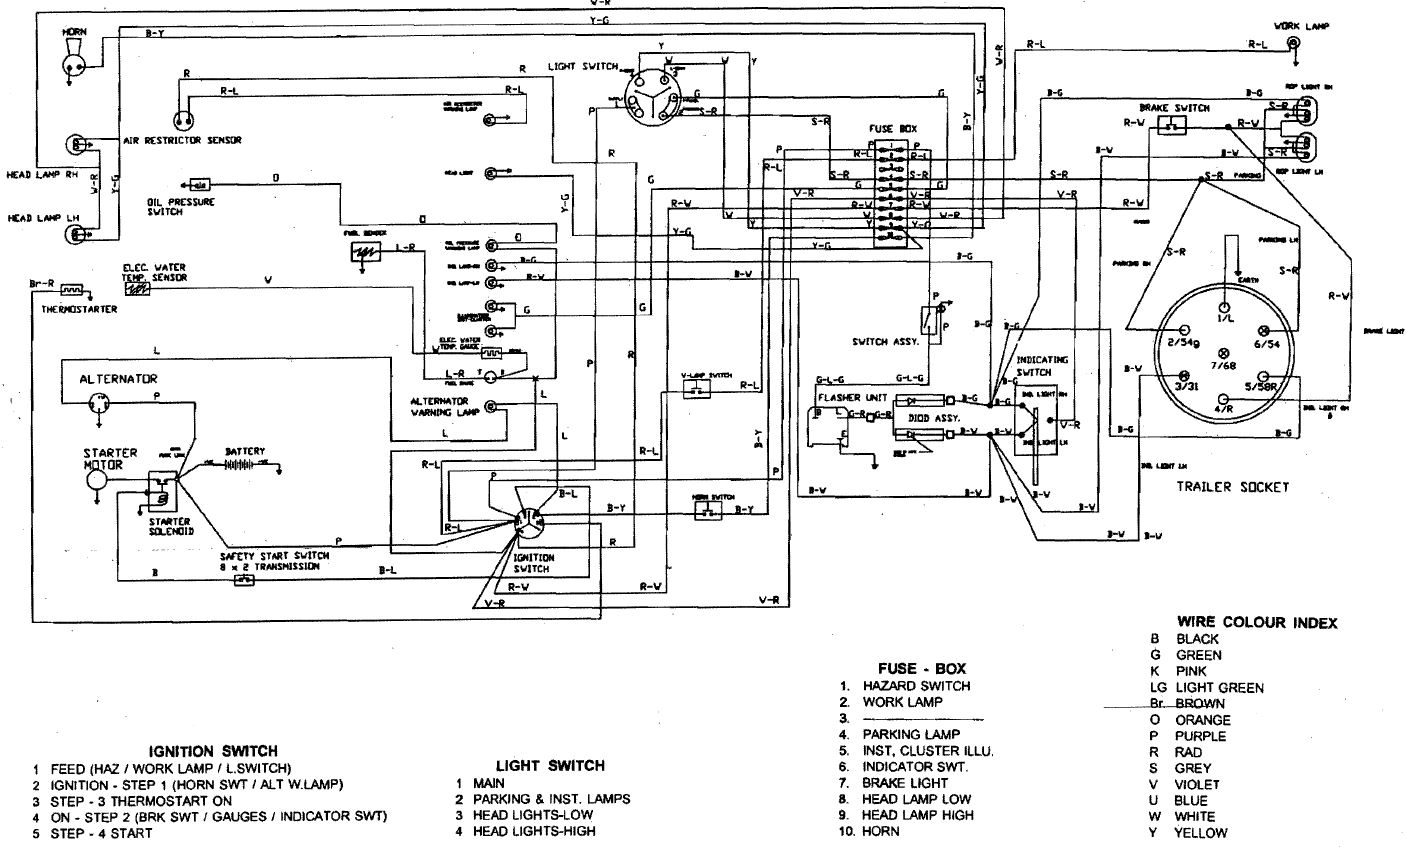 wiring diagram ignition switch detailed schematics diagram rh jvpacks com